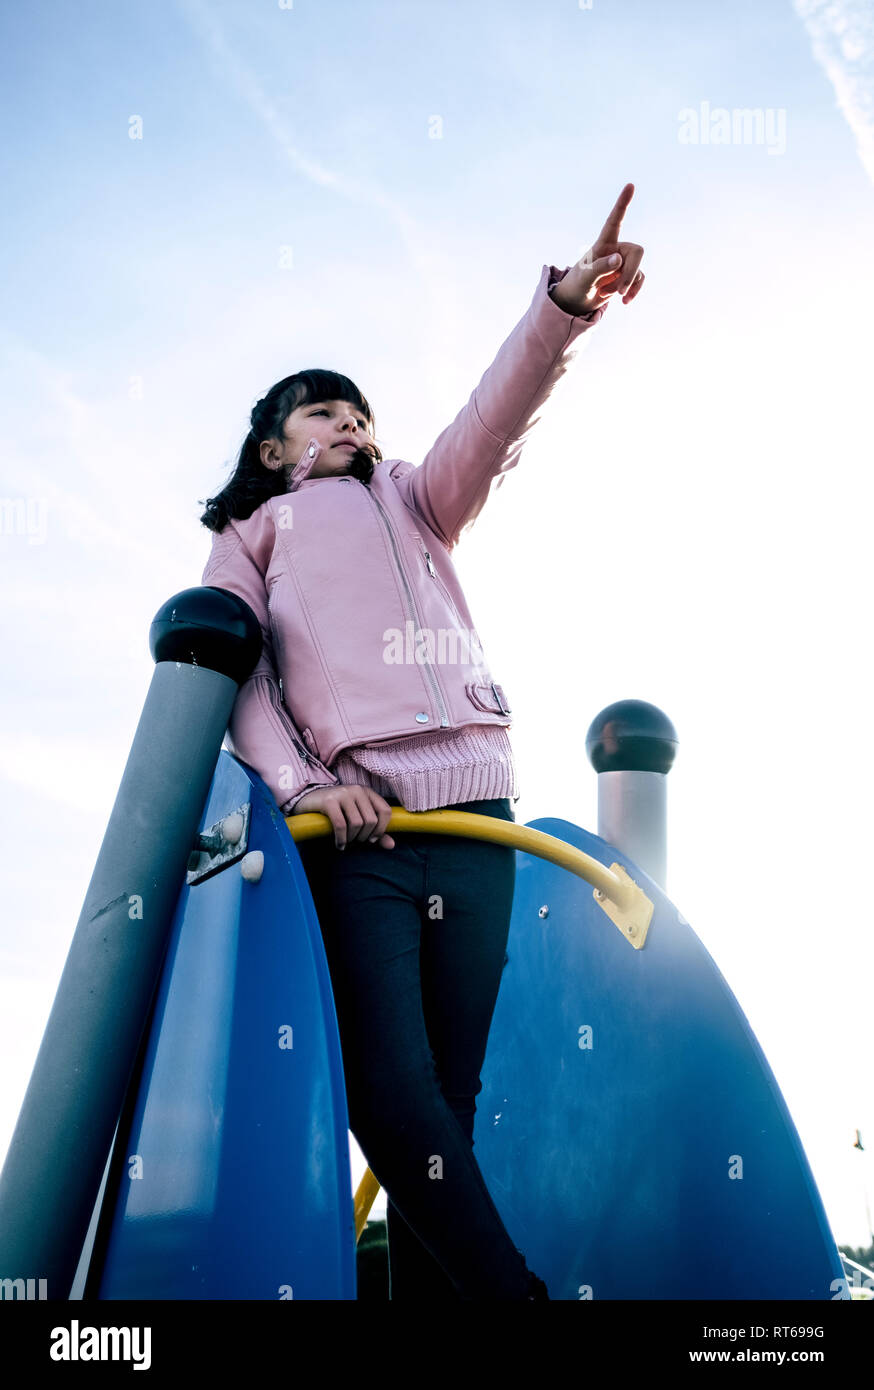 Girl wearing pink leather jacket on playground pointing on something at distance - Stock Image